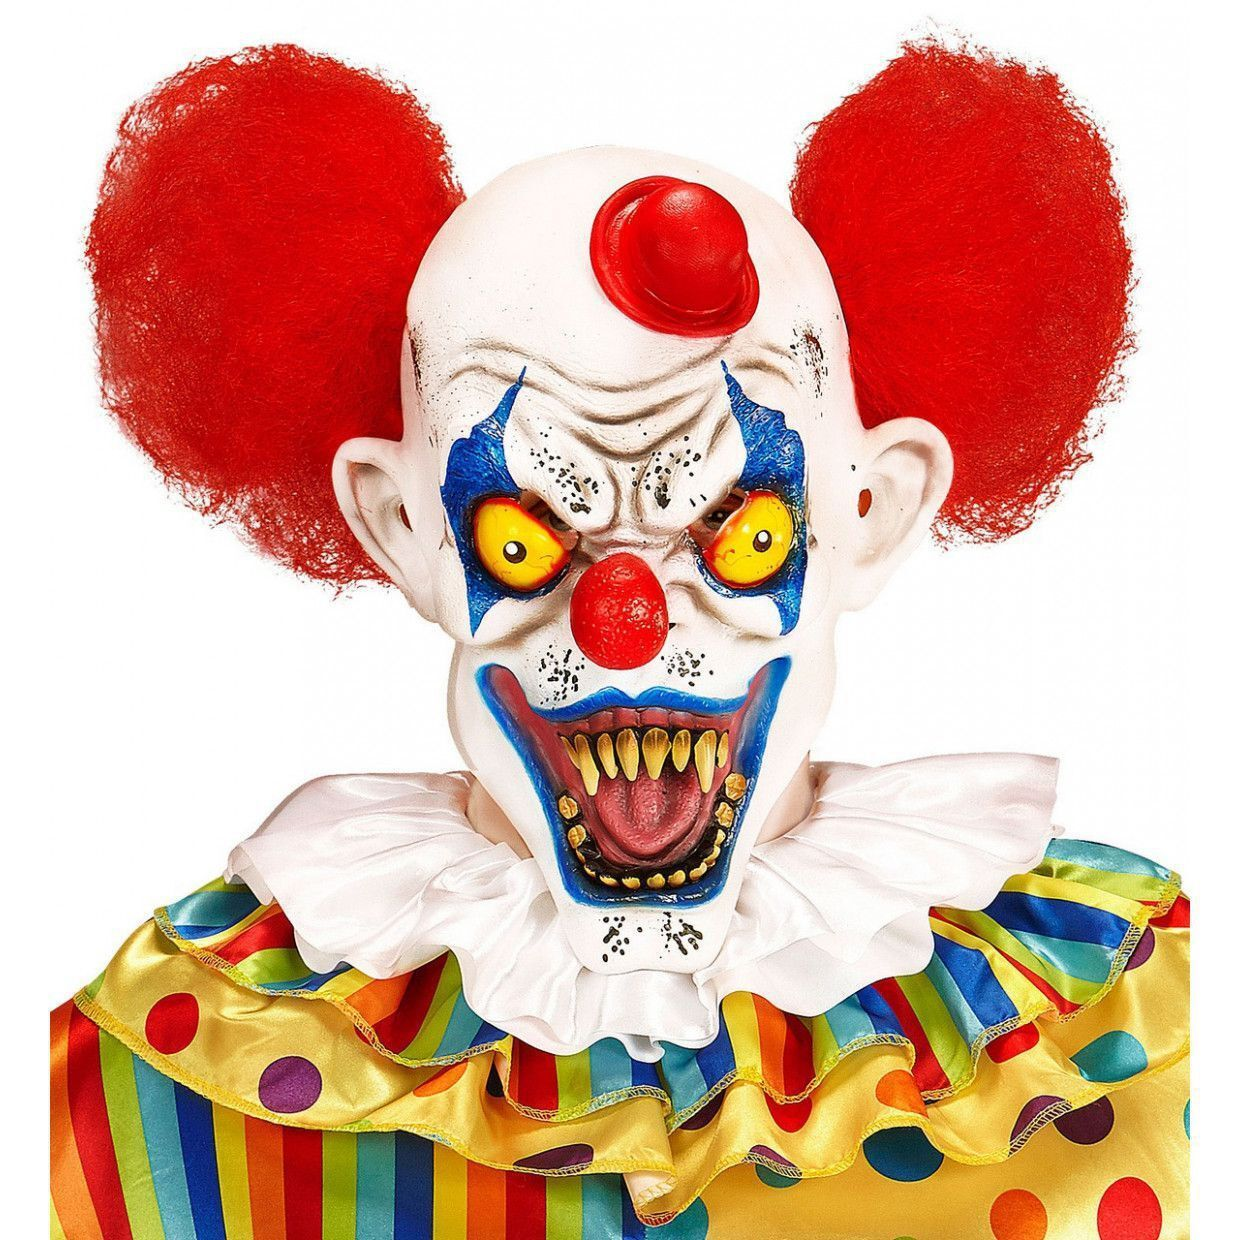 Killer horror clown masker met rode krullen en hoed scream